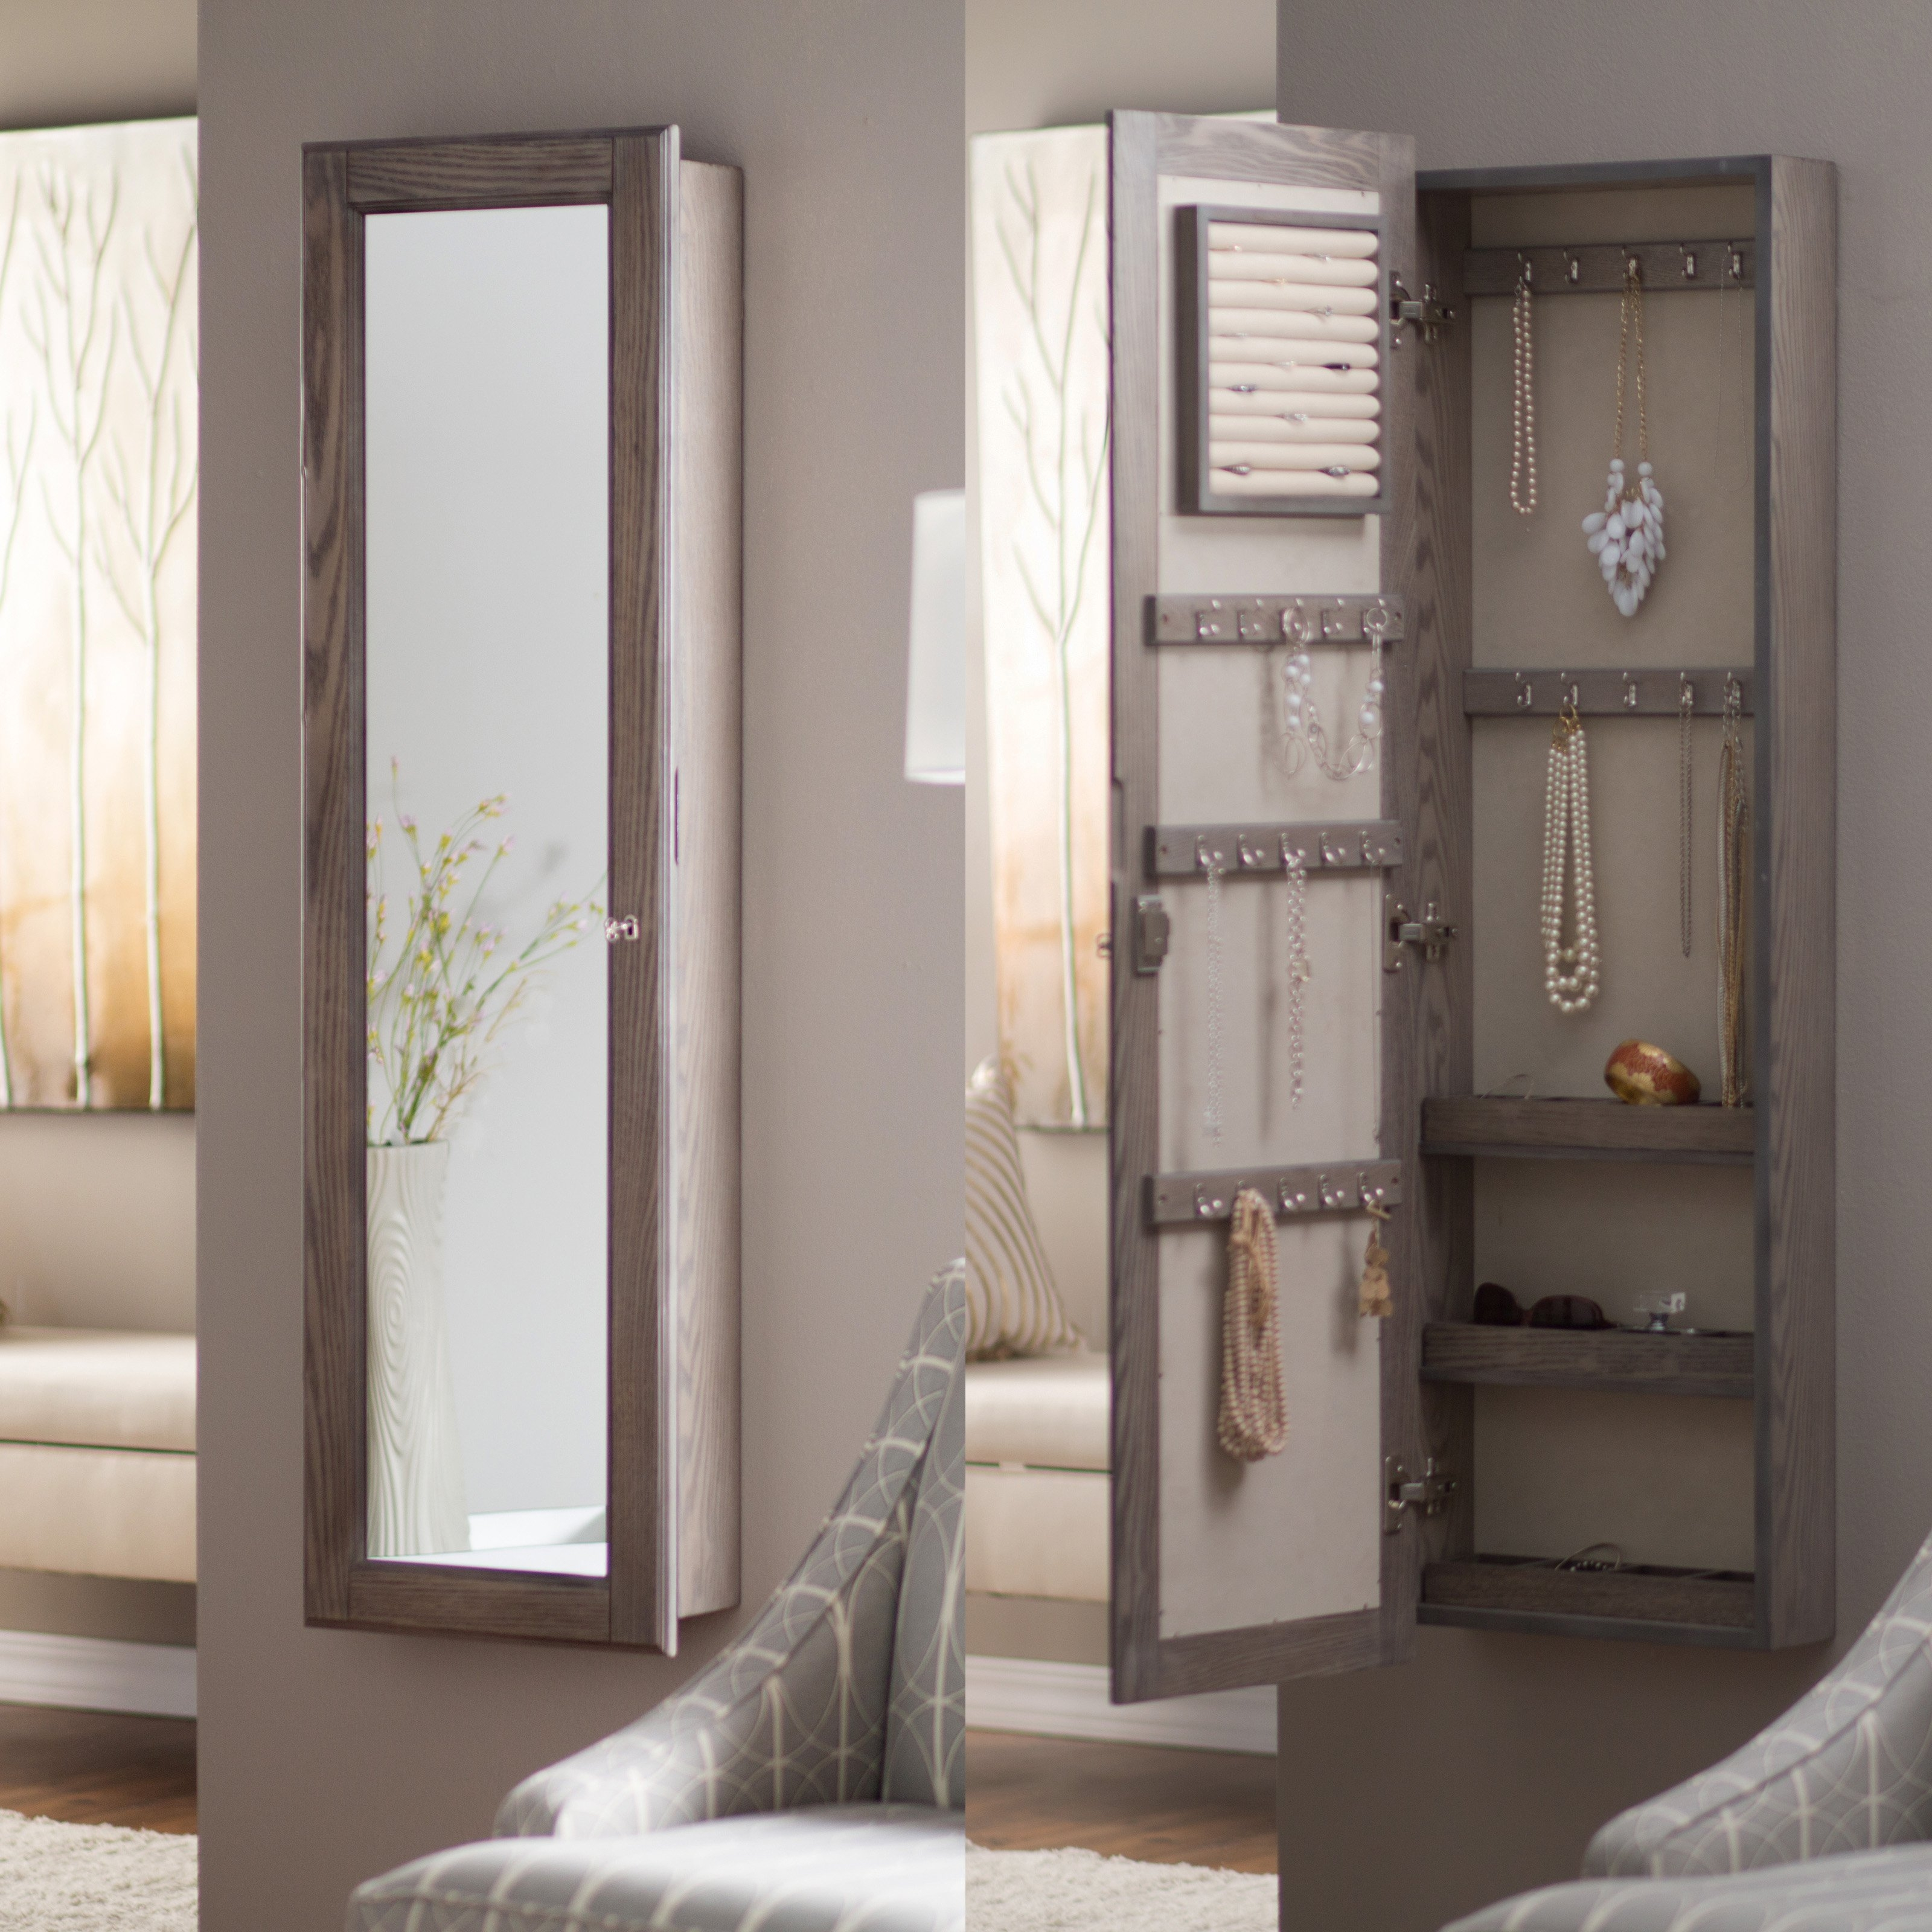 Mirrored Jewelry Cabinet Wall Mount Mirrored Jewelry Cabinet Wall Mount wall mounted locking mirrored jewelry armoire driftwood 3200 X 3200